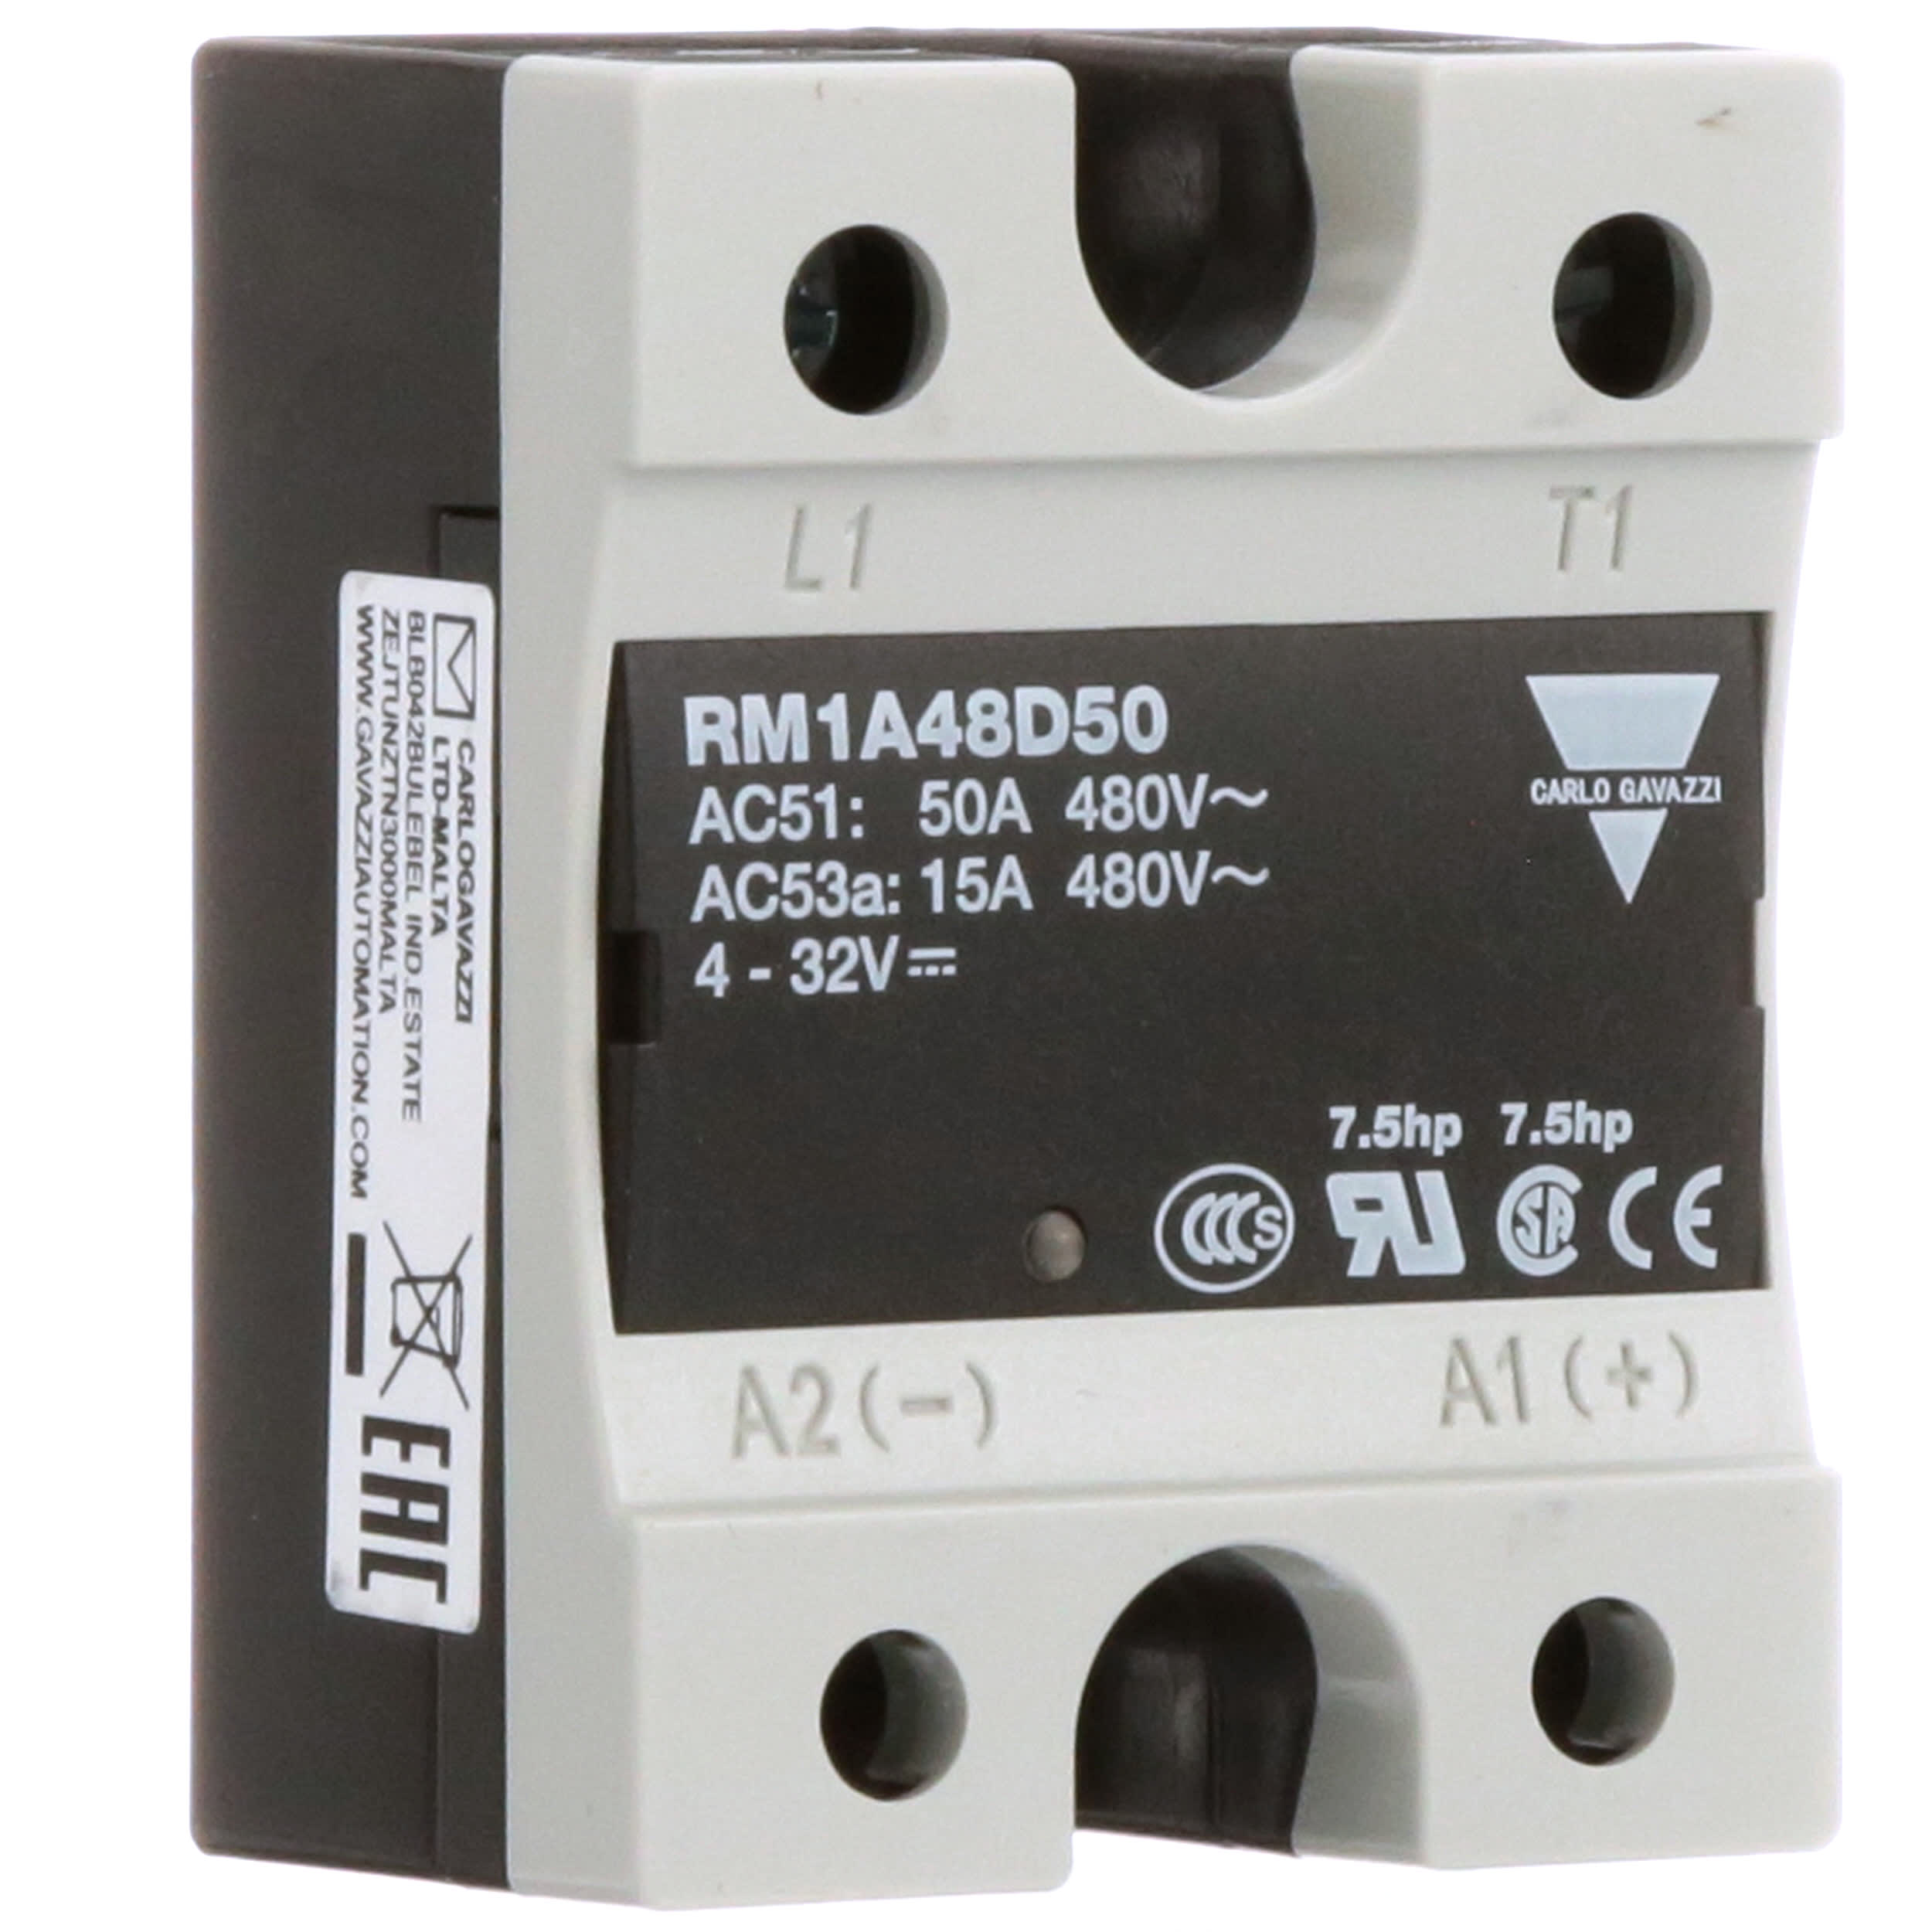 Carlo GavazziRN2A48D30Solid State Relay Refurbished